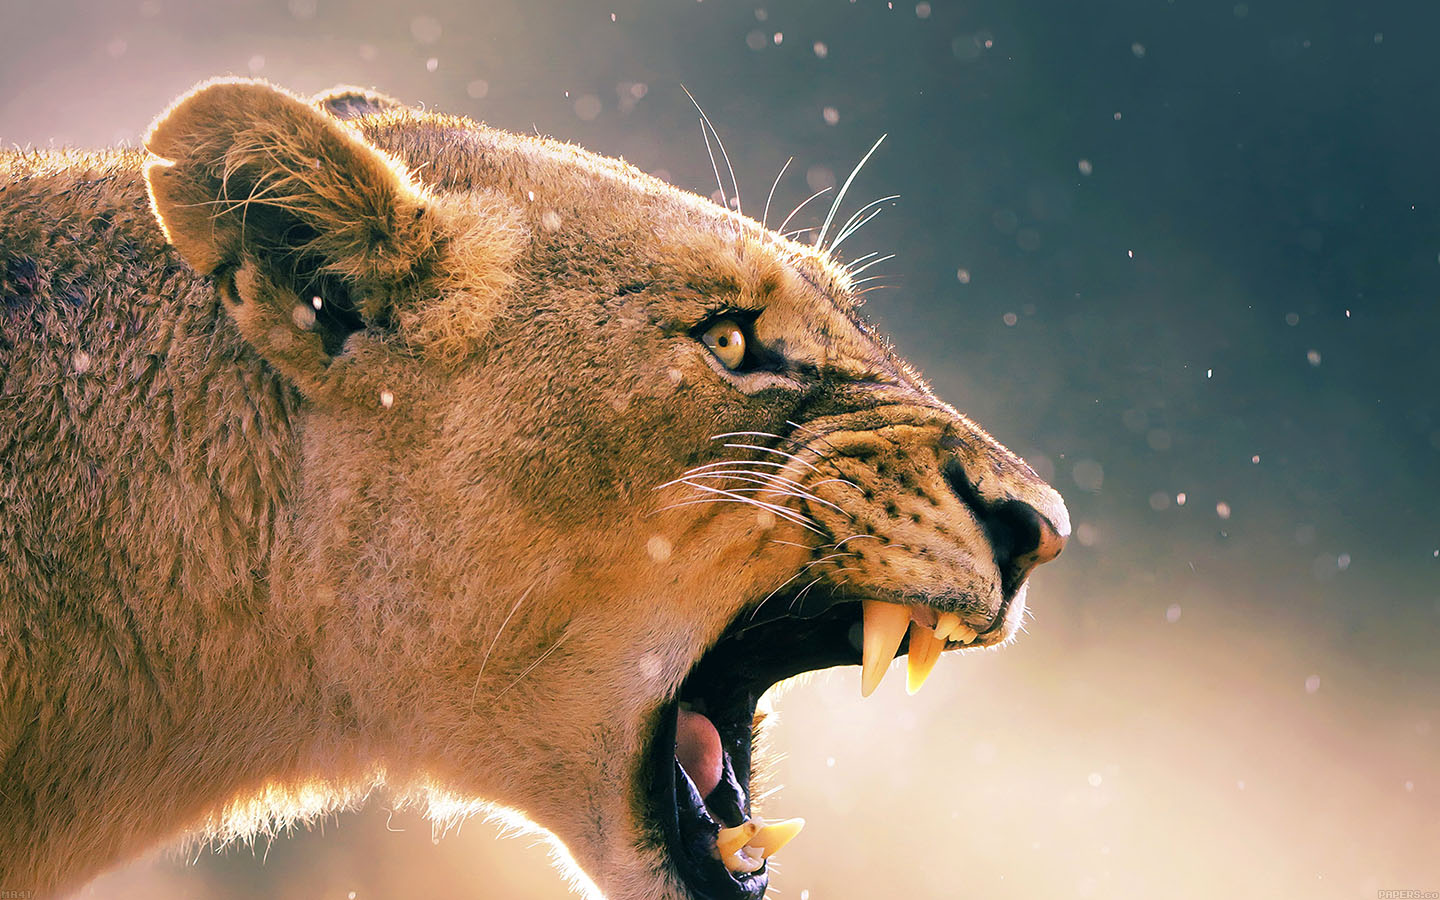 Macbook Pro Retina Car Wallpaper Ma41 Angry Lion One Animal Nature Papers Co